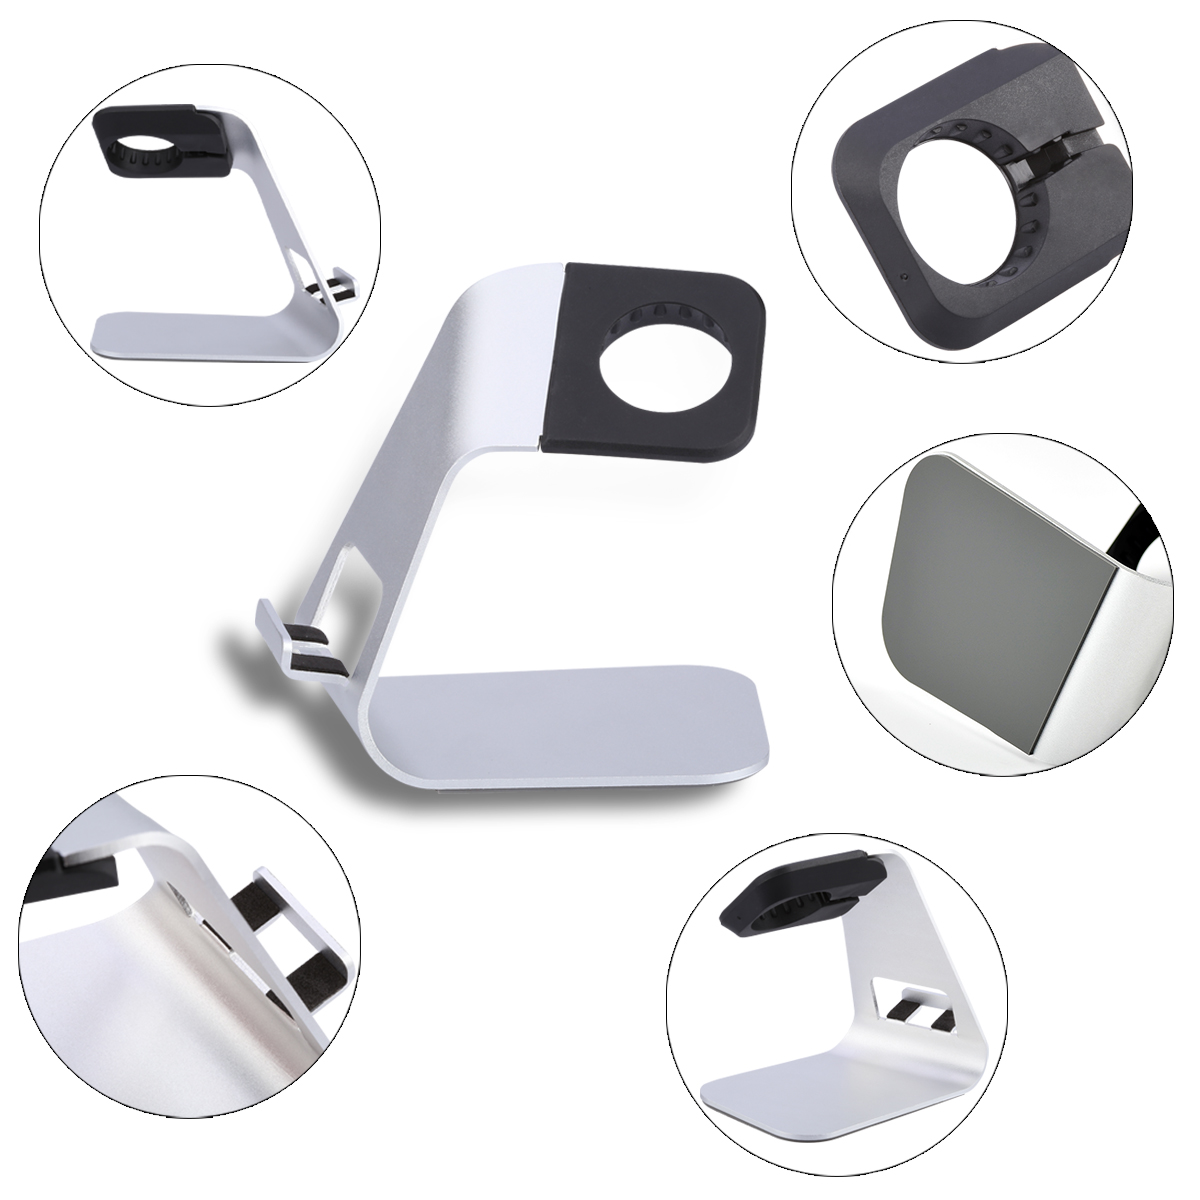 TS026 Smart Charging Stand Anti-scratch Aluminum Build for Apple Watch